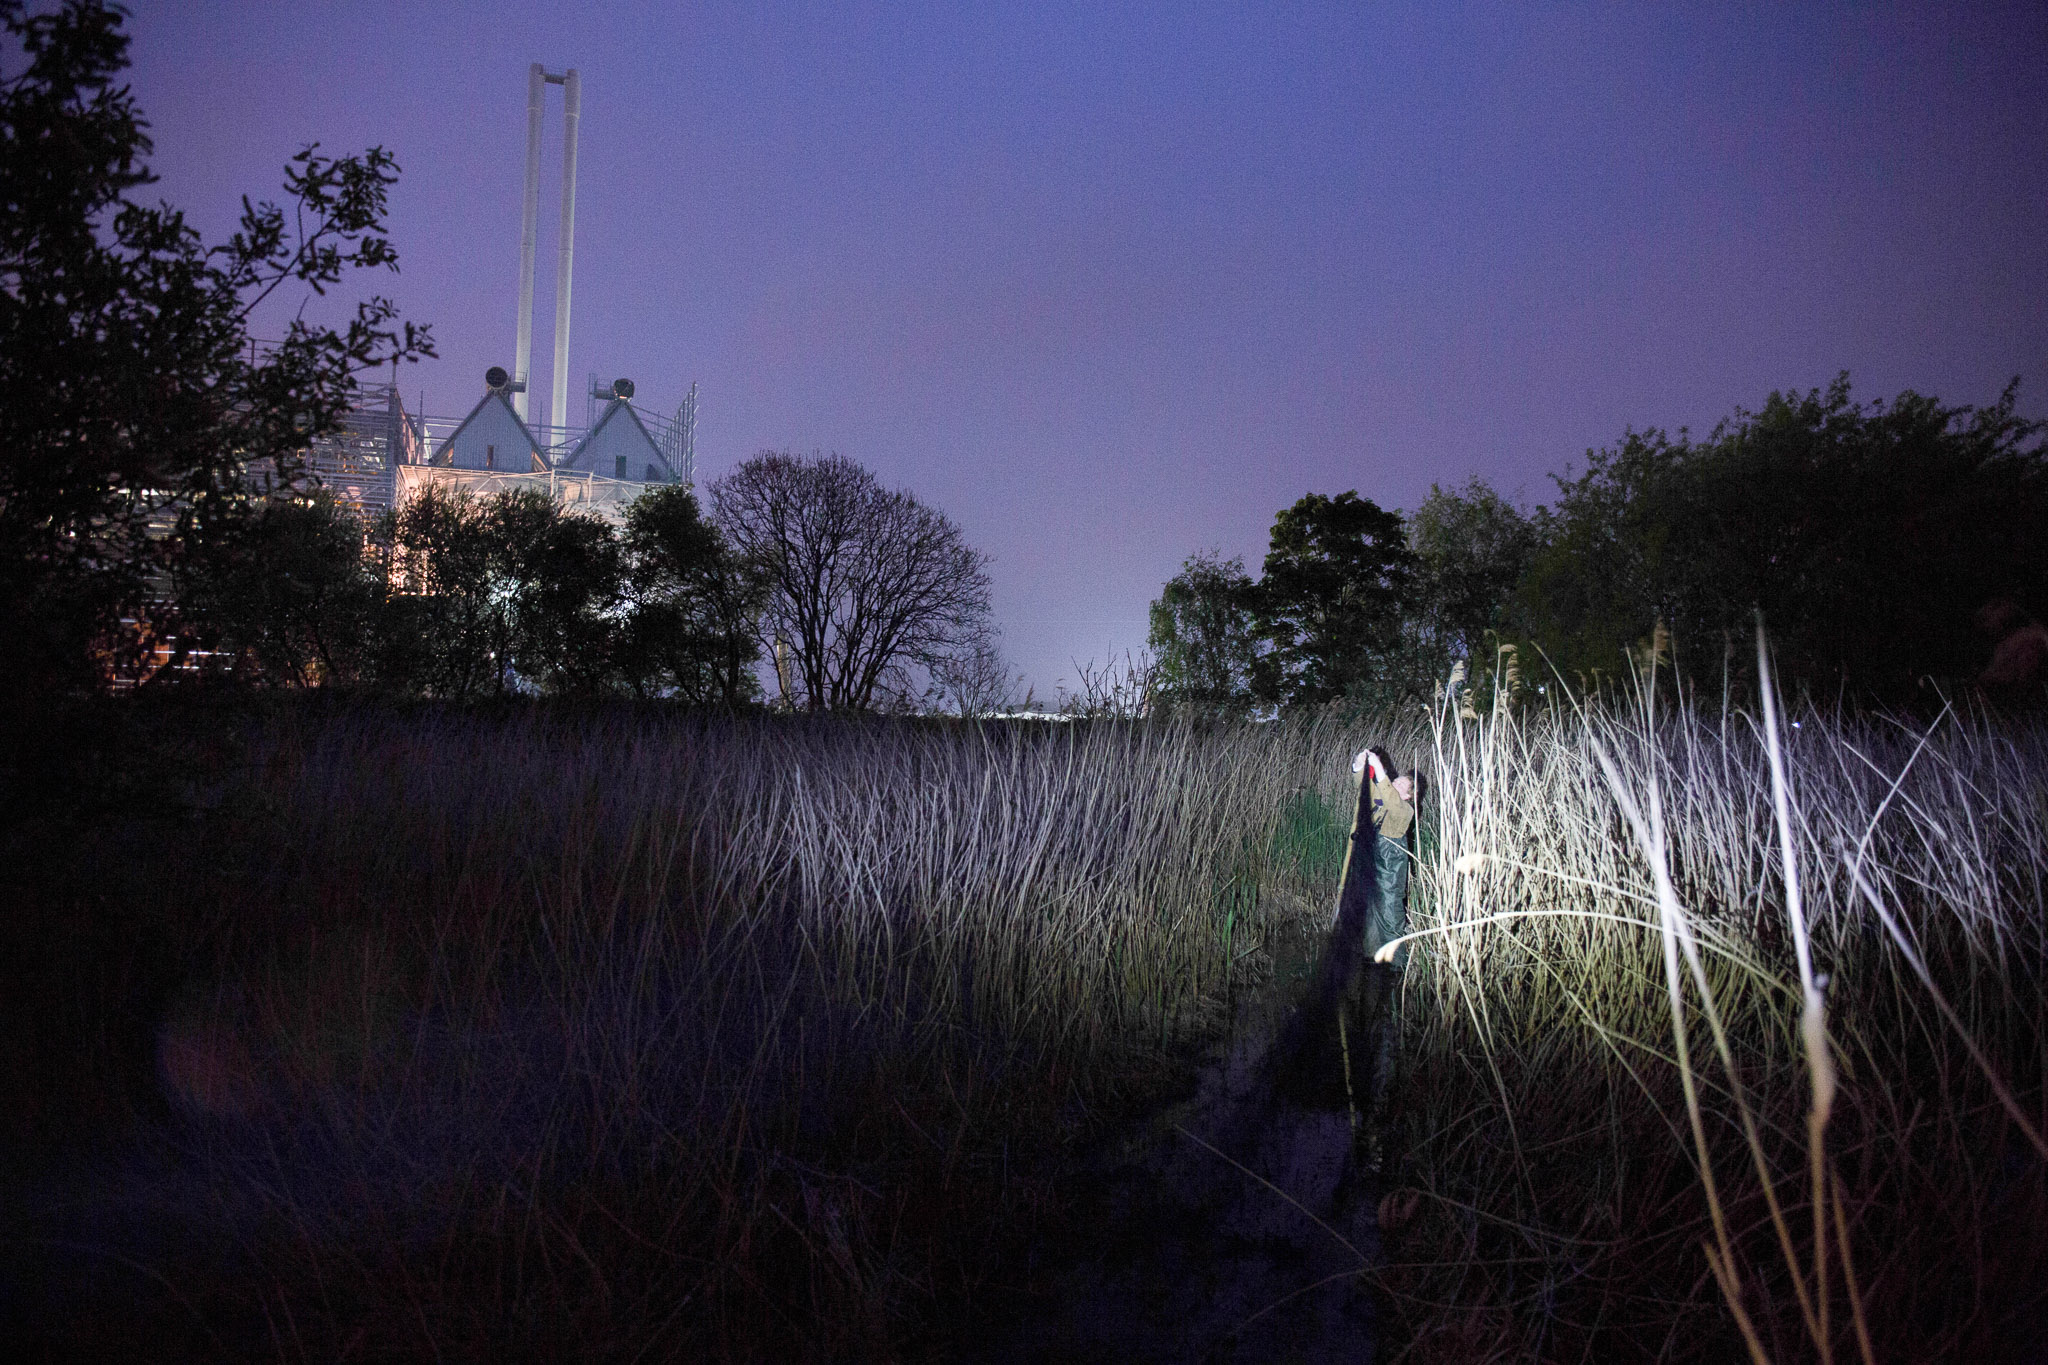 David Campbell sets out long, fine mist nets to catch passing birds.Behind is the Beddington Incinerator, collecting vital data from bird ringing allows the land owners to visually see the large biodiversity  in the surrounding reedbeds.